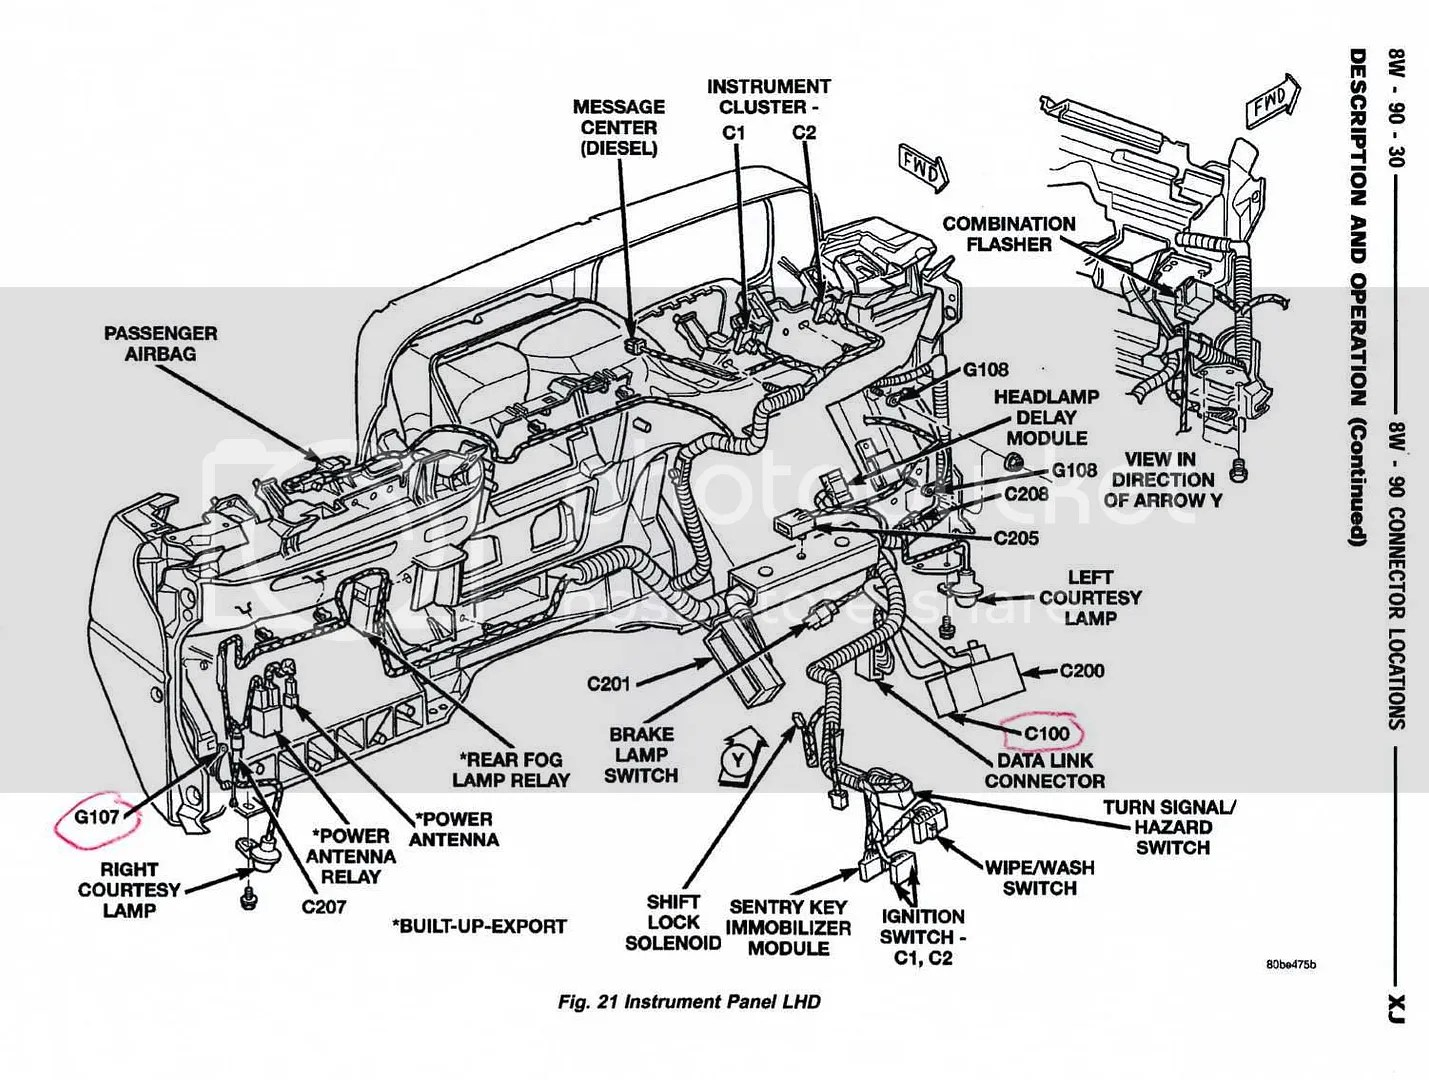 83 Cj7 Coil Wiring Diagram